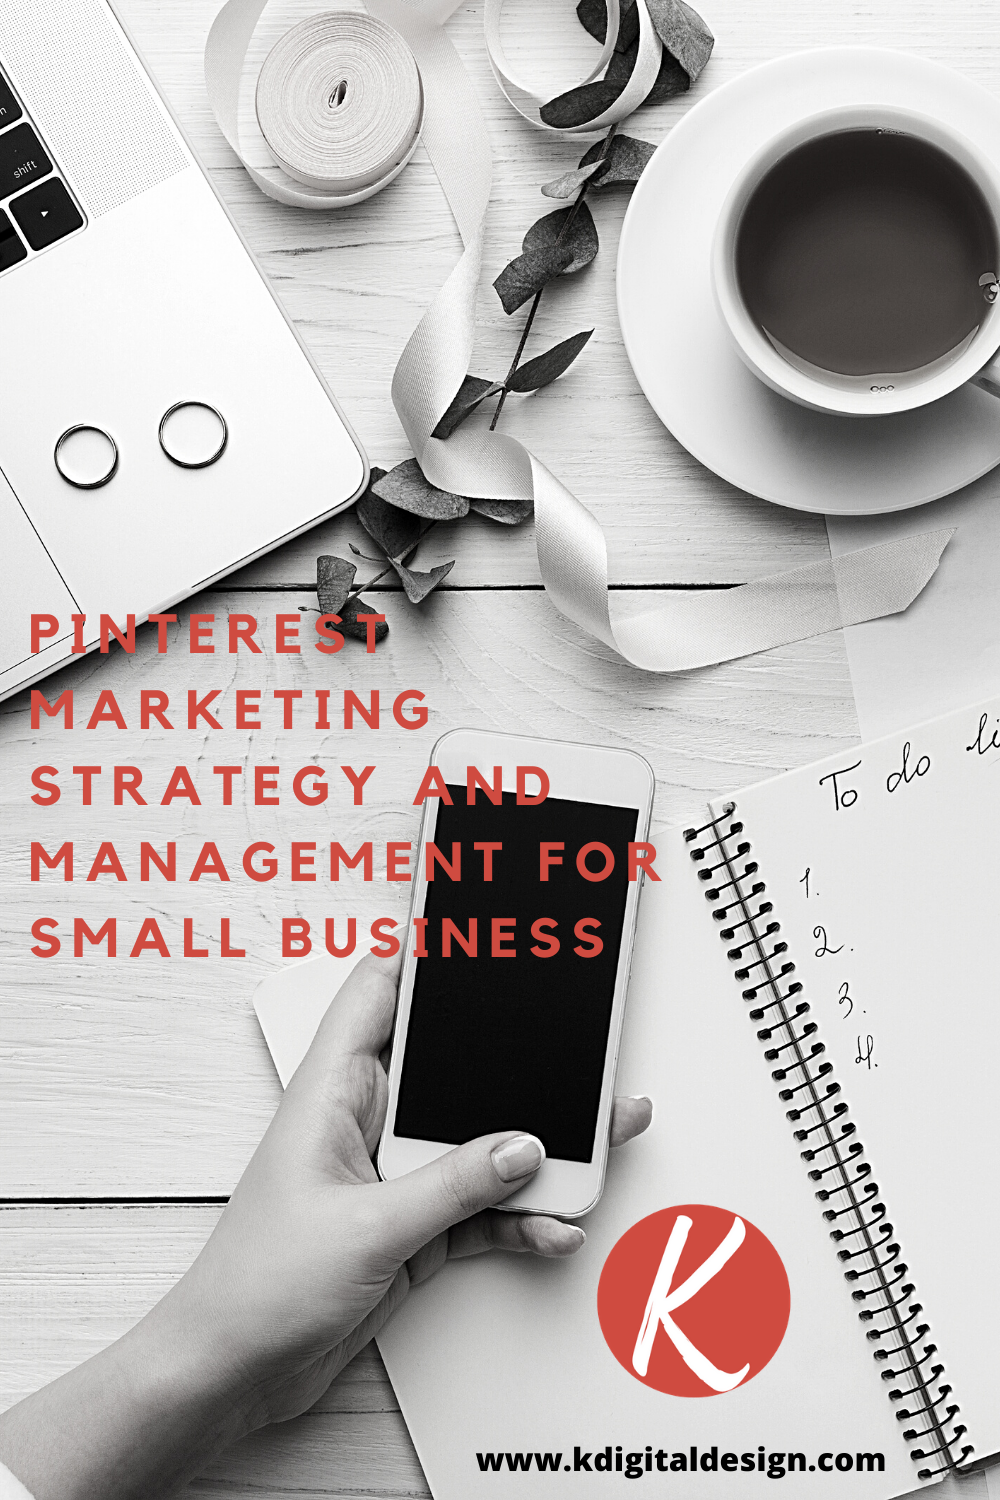 Pinterest Marketing for Small Business